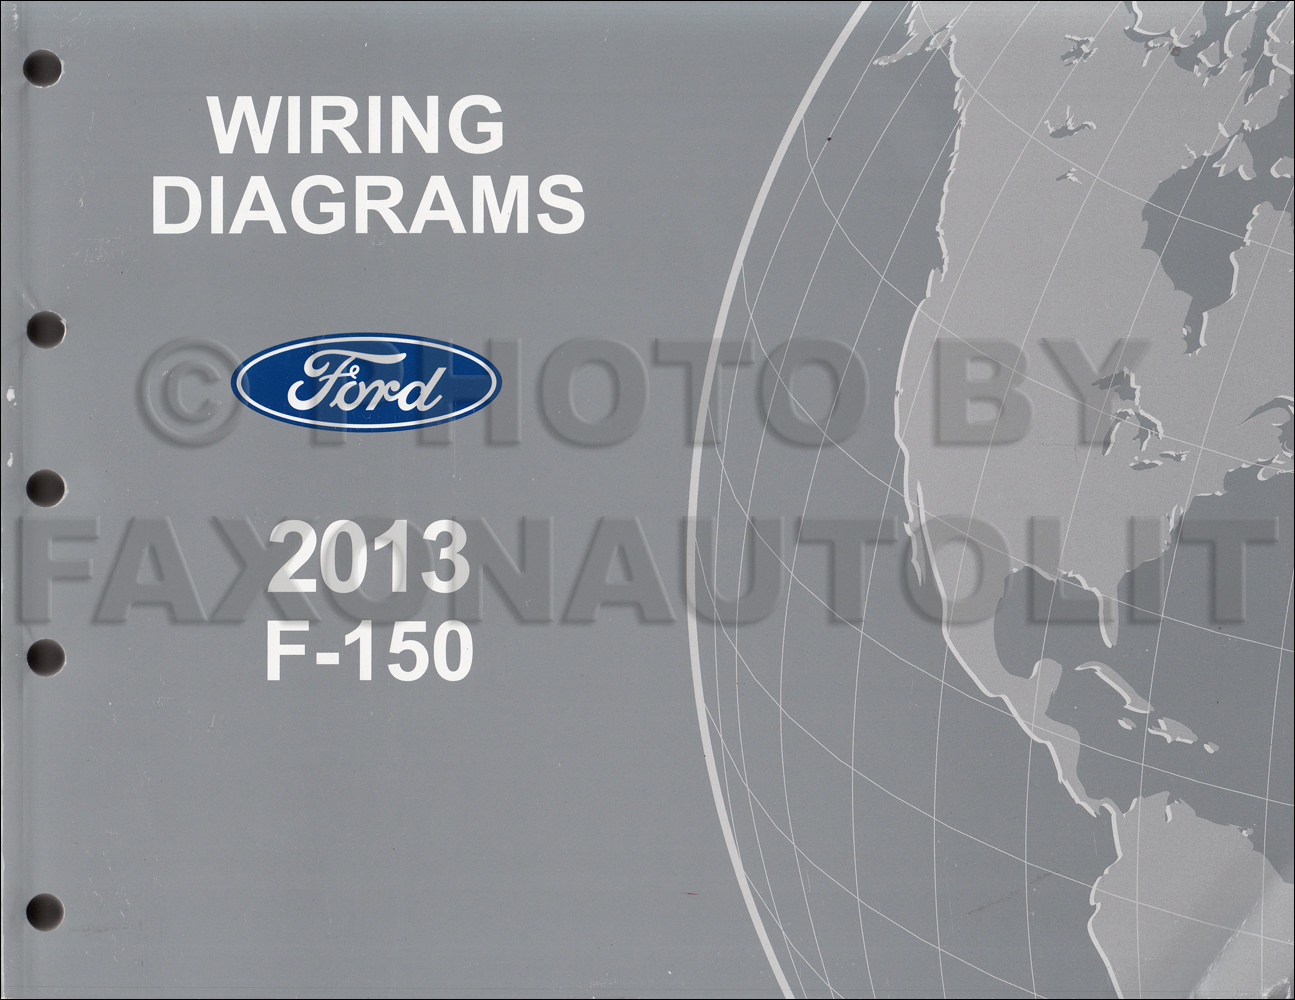 2013 Ford F 150 Wiring Diagram Manual Original 85 Ford F-150 Wiring Diagram  2013 Ford F 150 Wiring Diagram